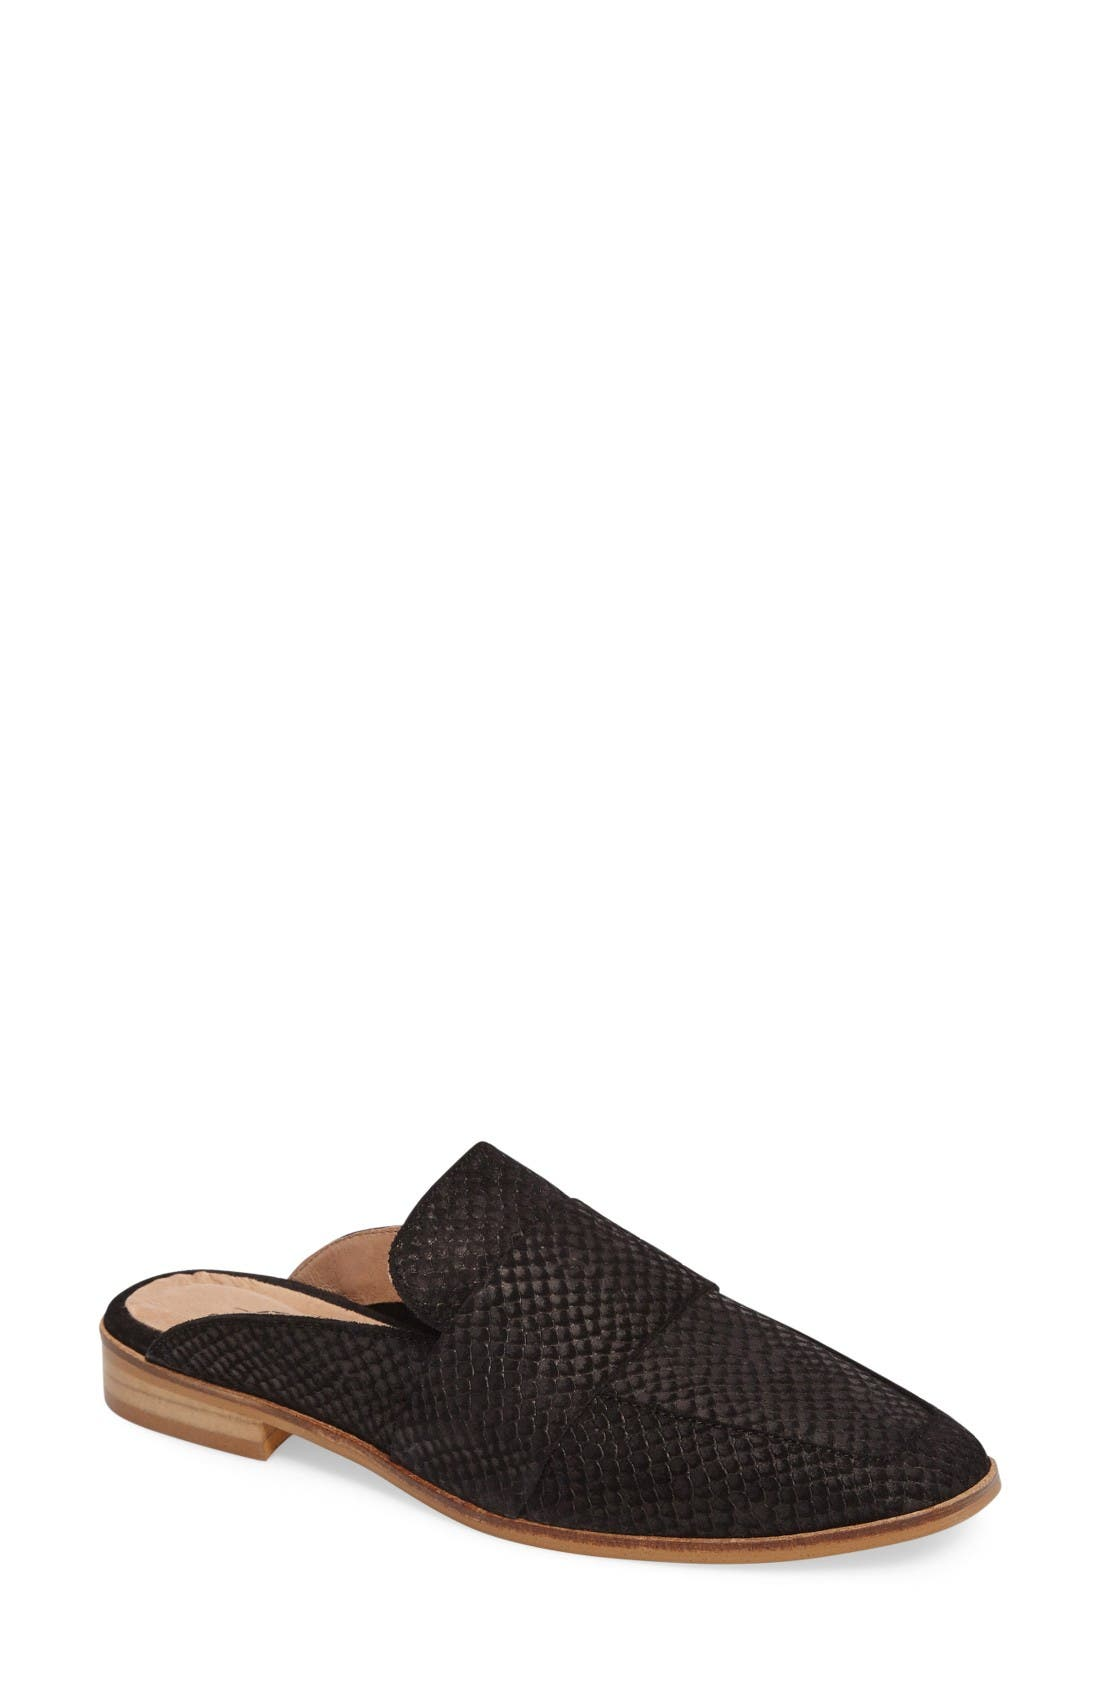 At Ease Loafer Mule,                         Main,                         color, Black Leather